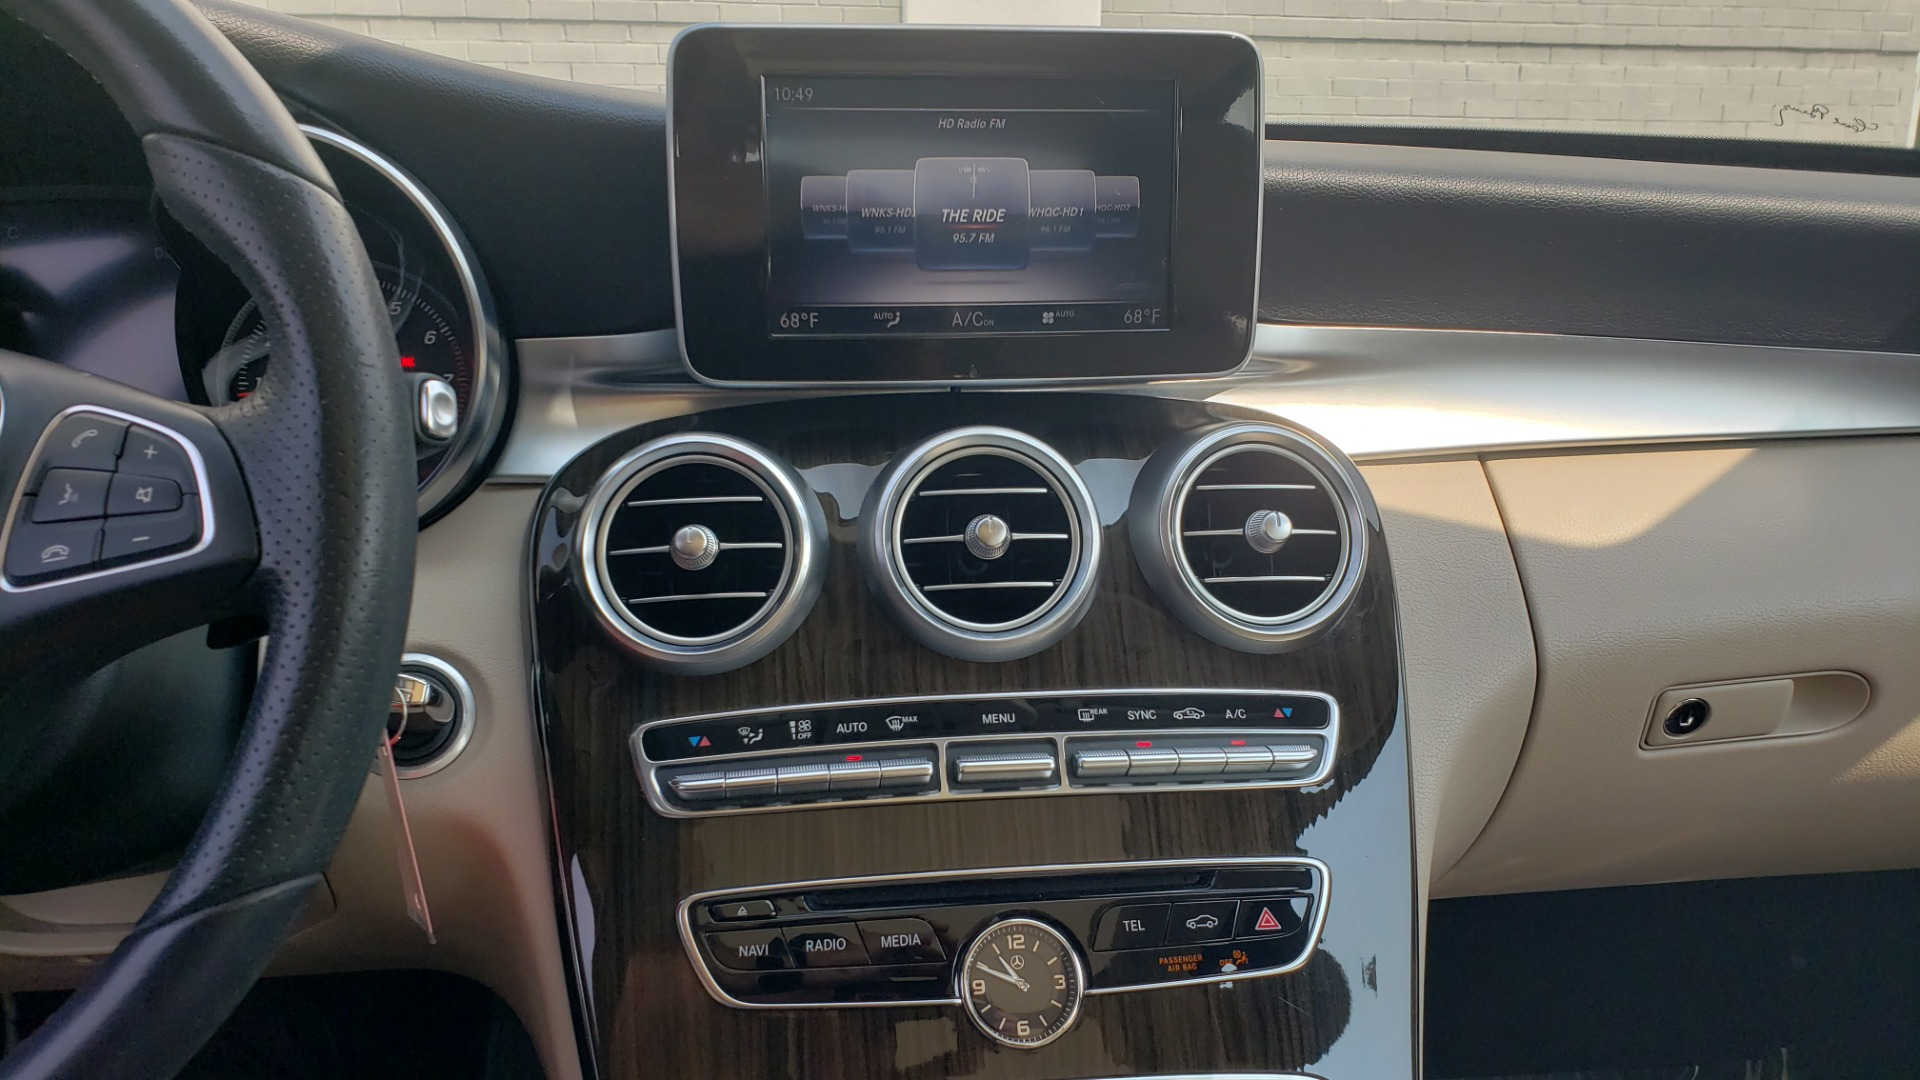 Used 2018 Mercedes-Benz C-CLASS C 300 PREMIUM / KEYLESS-GO / APPLE / PANO-ROOF / REARVIEW for sale $28,295 at Formula Imports in Charlotte NC 28227 41